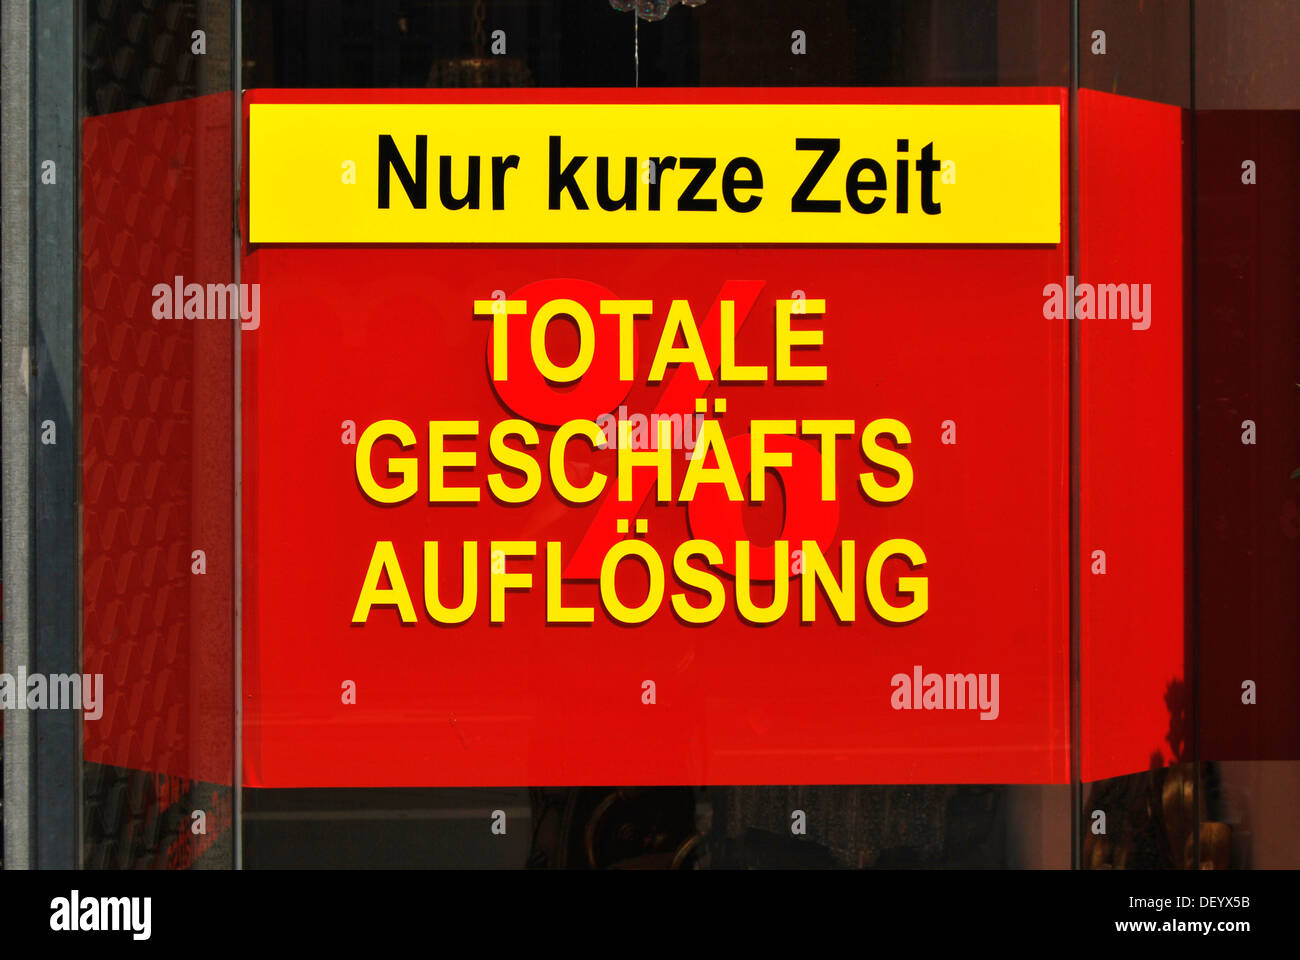 Nur kurze Zeit, Totale Geschaeftsaufloesung or Only a short time, total liquidation, sign, bankruptcy and limited time offers - Stock Image